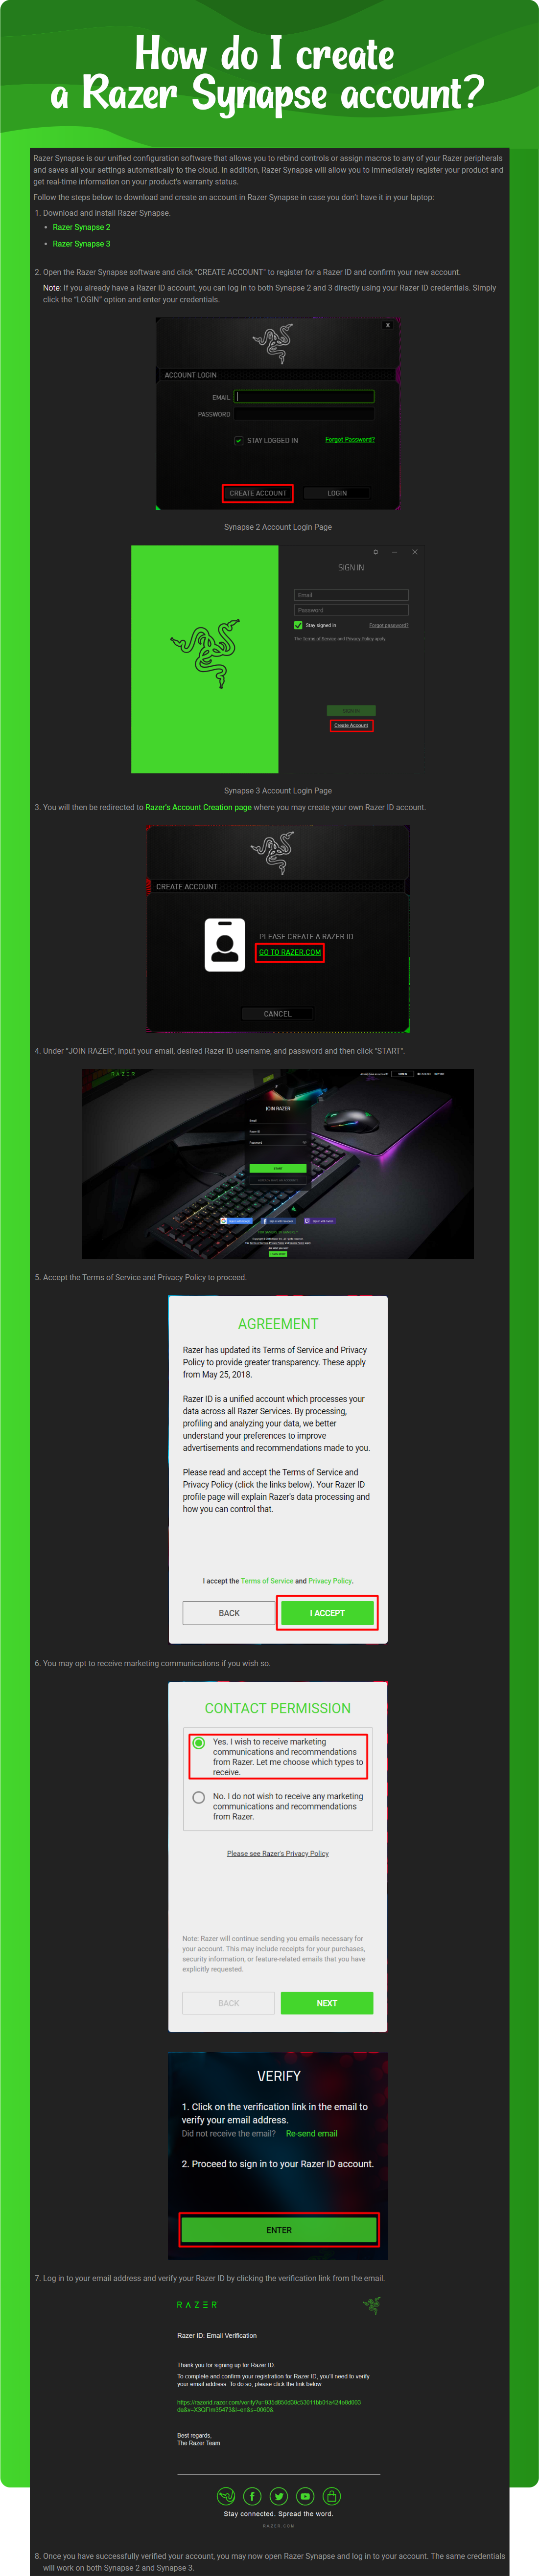 How do I create a Razer Synapse account